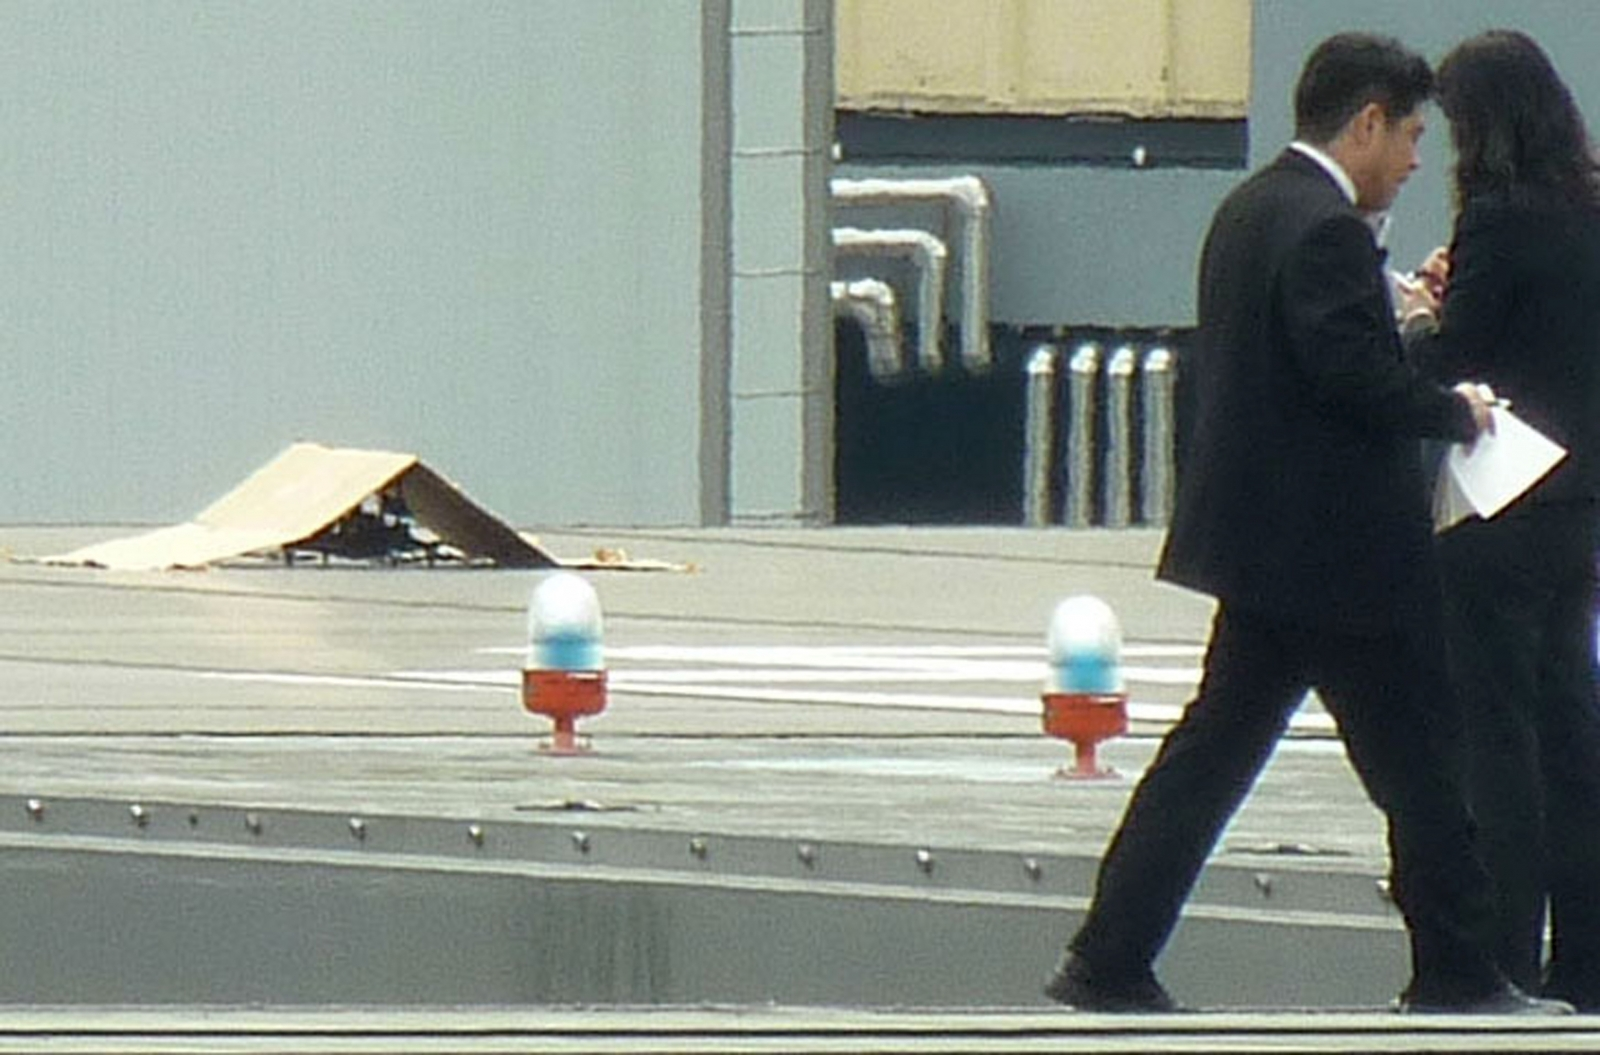 Quadcopter drone lands on Japanese PM office